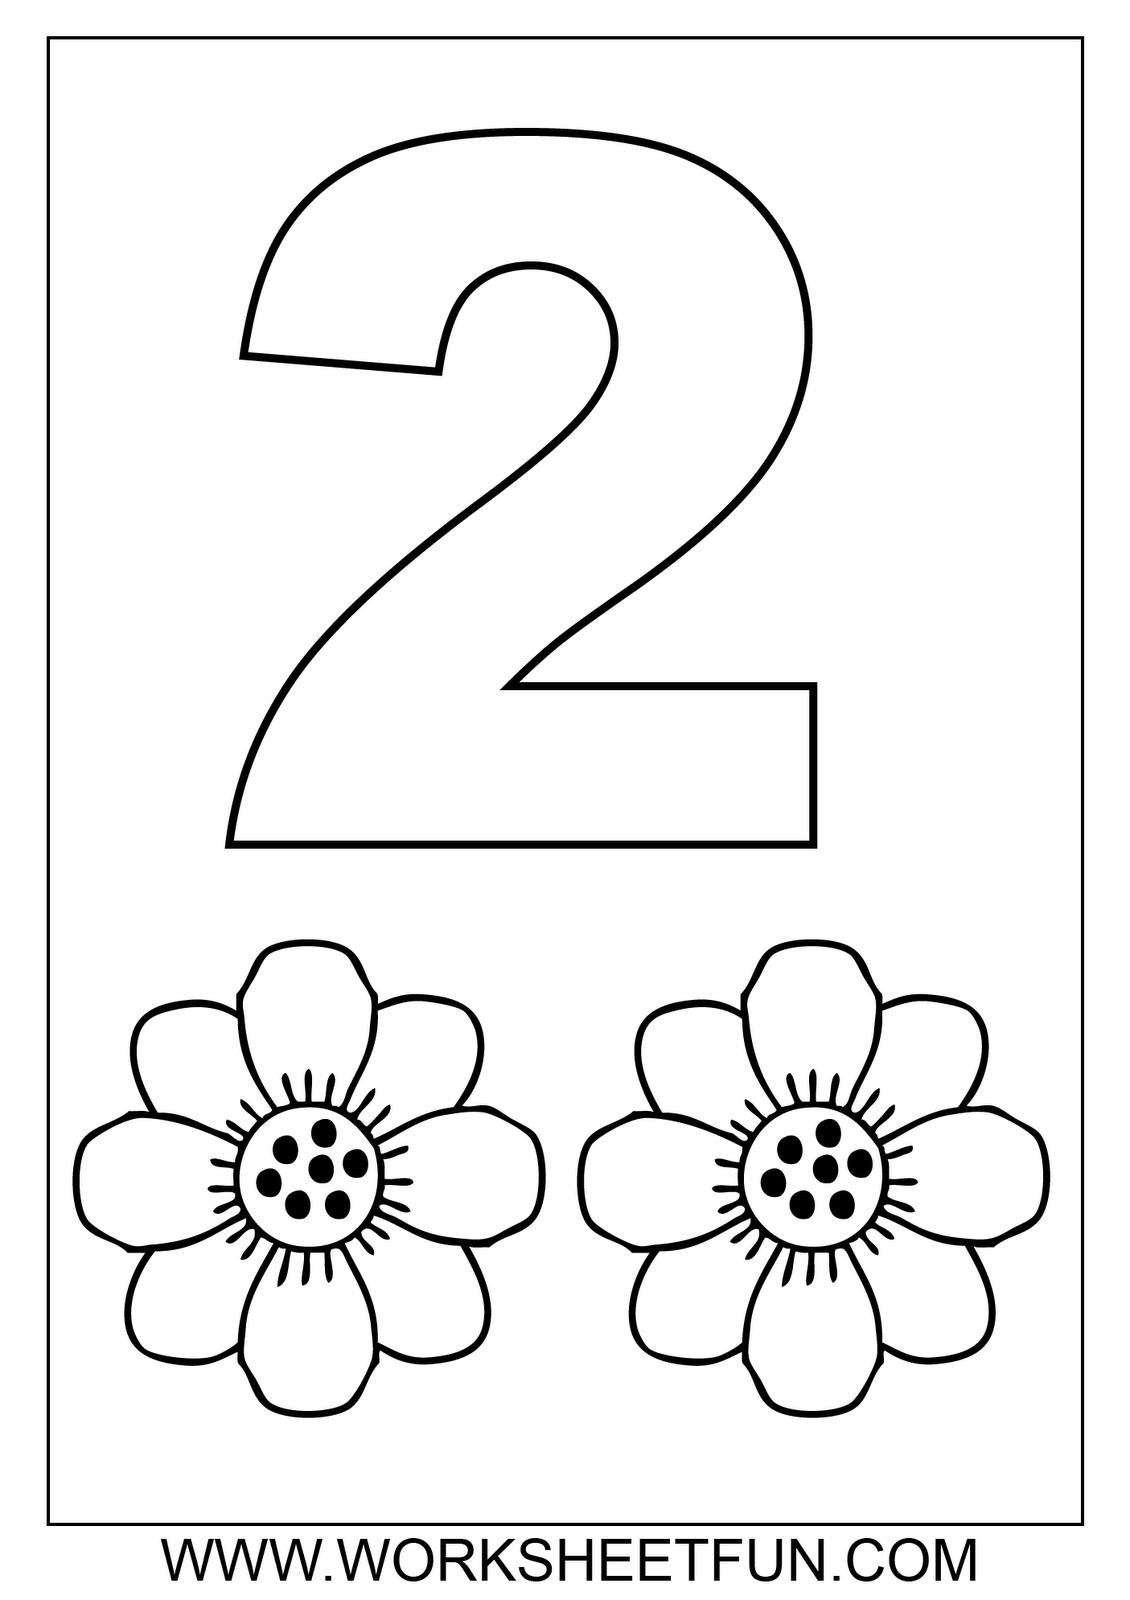 Coloring sheets for preschool - Preschool Number Coloring Pages Download Coloring Page